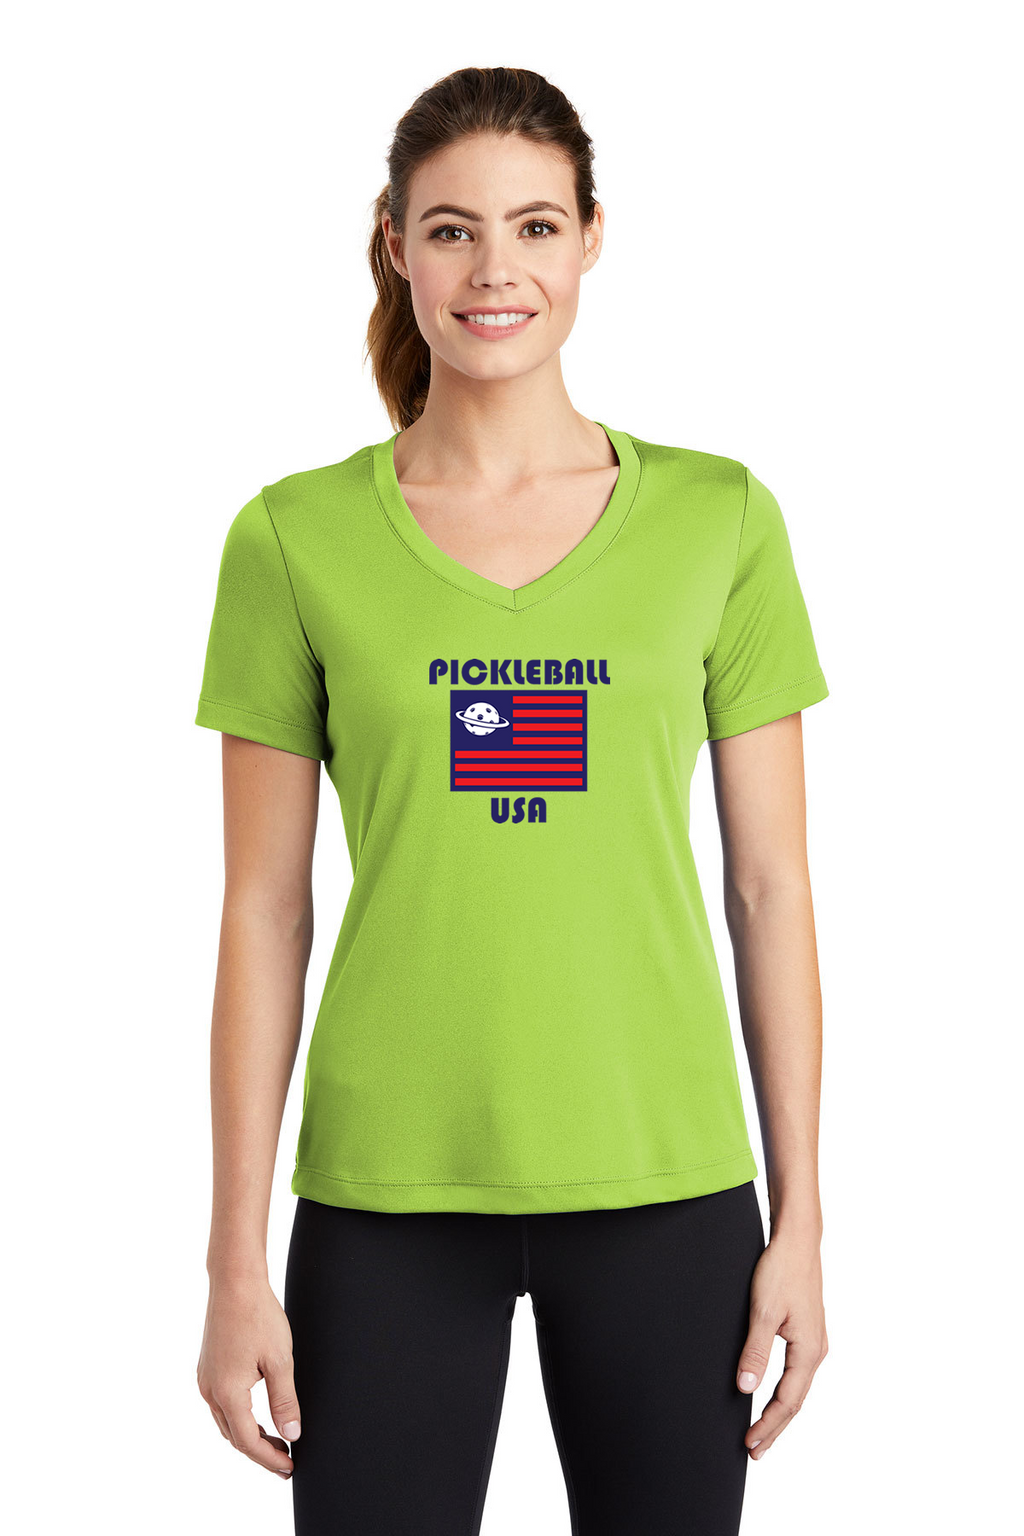 Ladies Short Sleeve Performance V-Neck Tee 'PB USA'